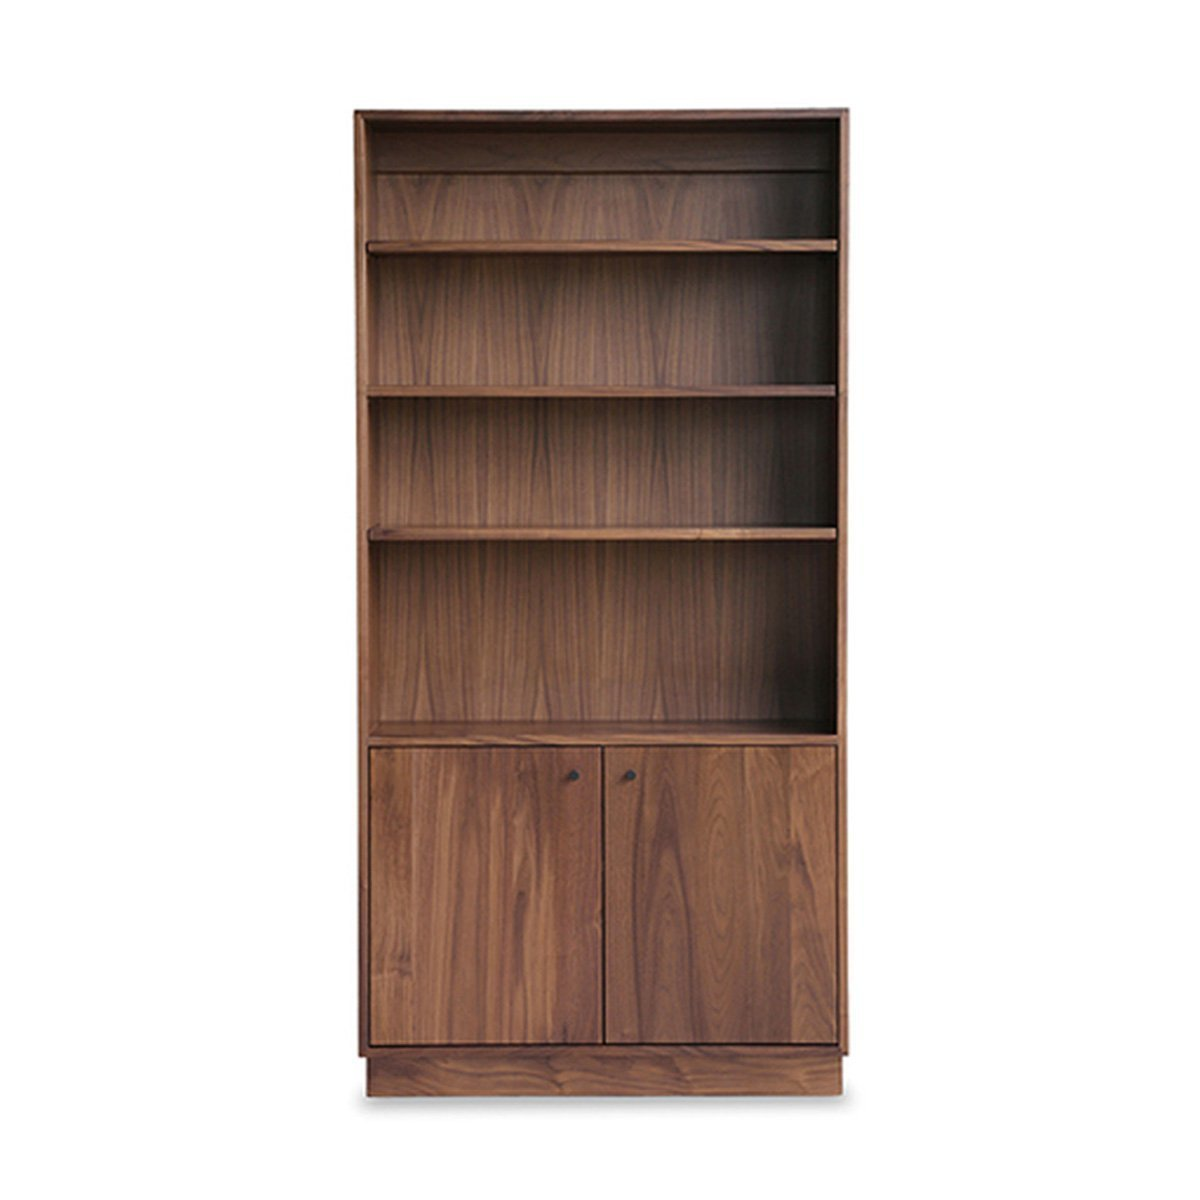 Hedge House Furniture Handcrafted Walnut Bookshelf ($1949)  Photo 14 of 18 in 9 Home Libraries We All Want to Curl Up in This Weekend